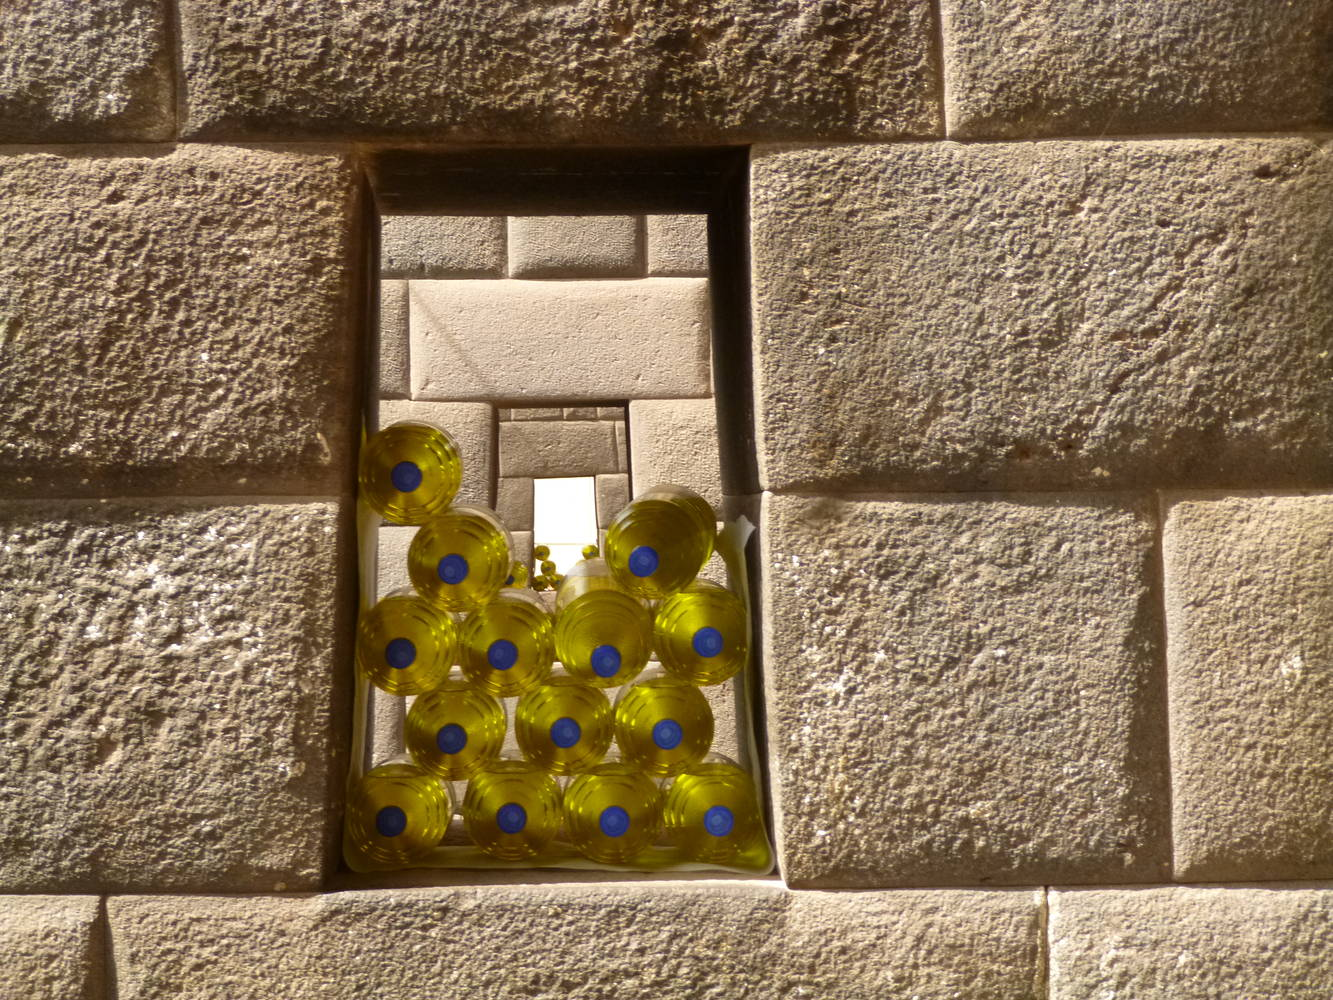 Inca Chamber Windows by El Celso